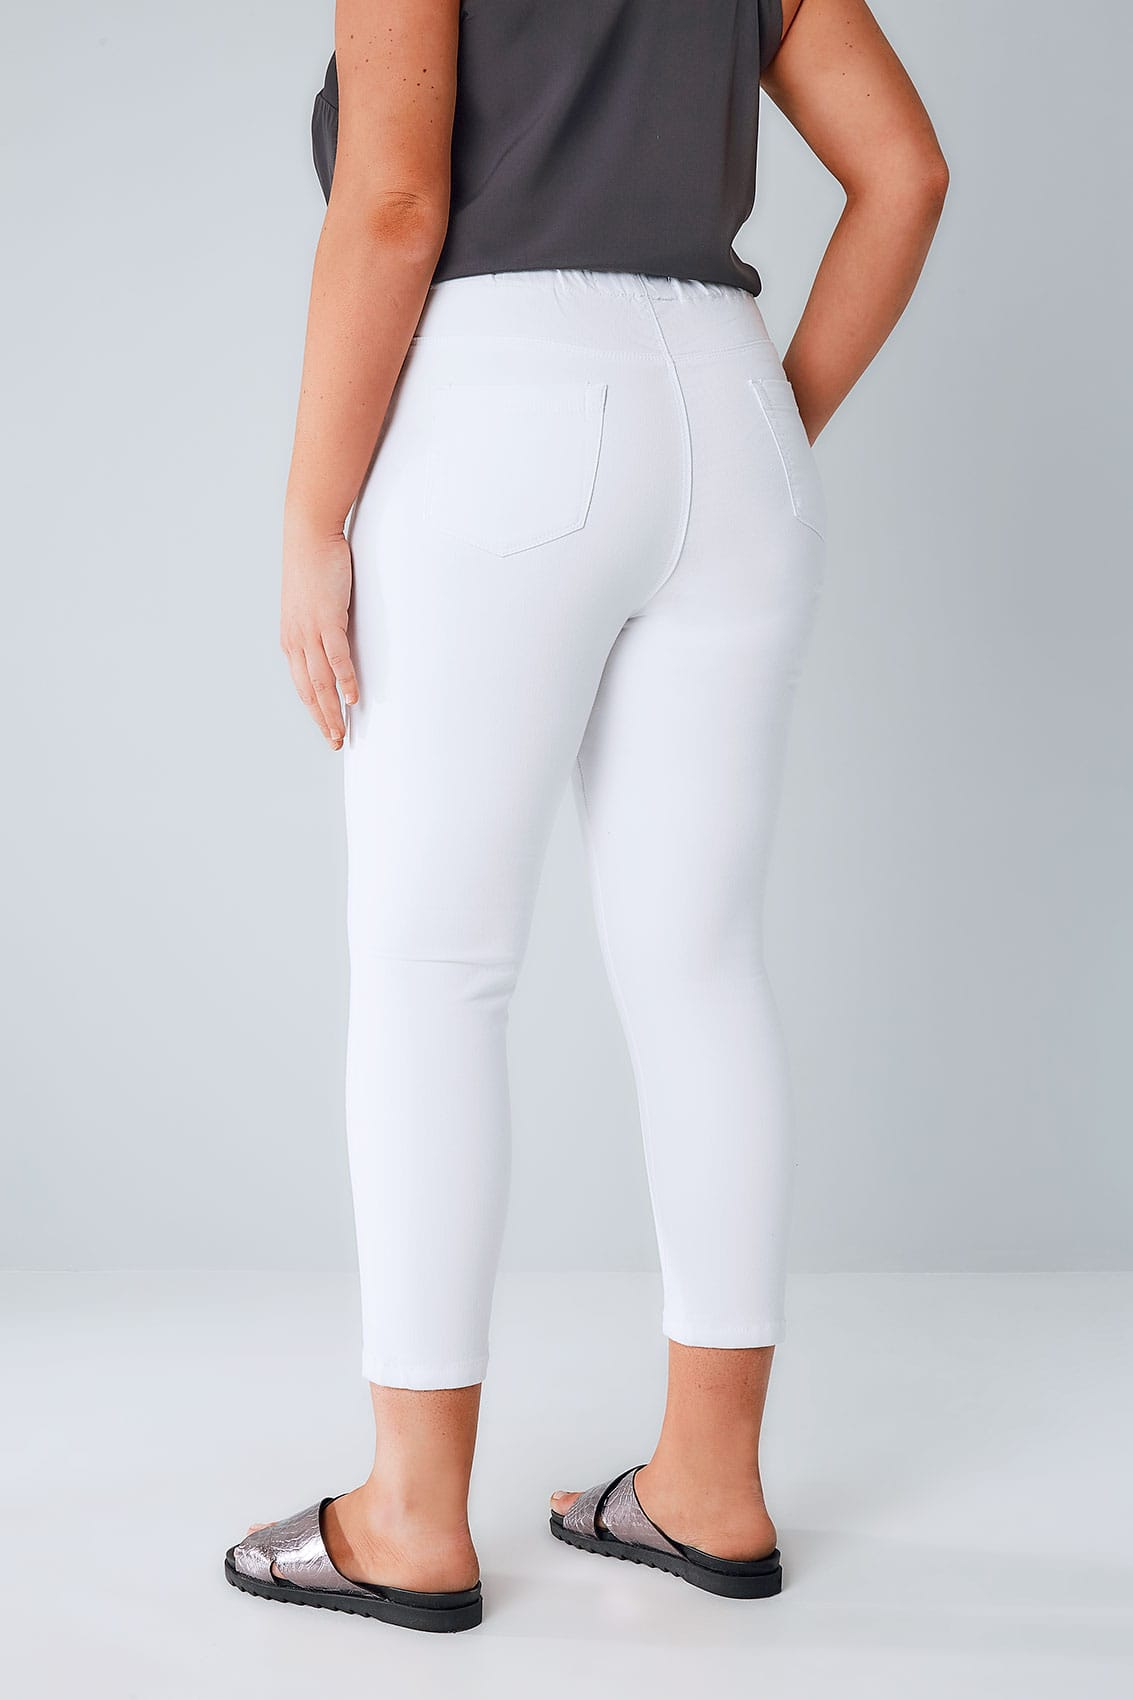 Shop Online Junior Jeans Store Including Junior Jeans and Junior Plus Size Jeans at Affordable Prices. The Latest Trends in Junior Denim Featuring Denim Skirts, Denim Shorts, Denim Jackets & More.